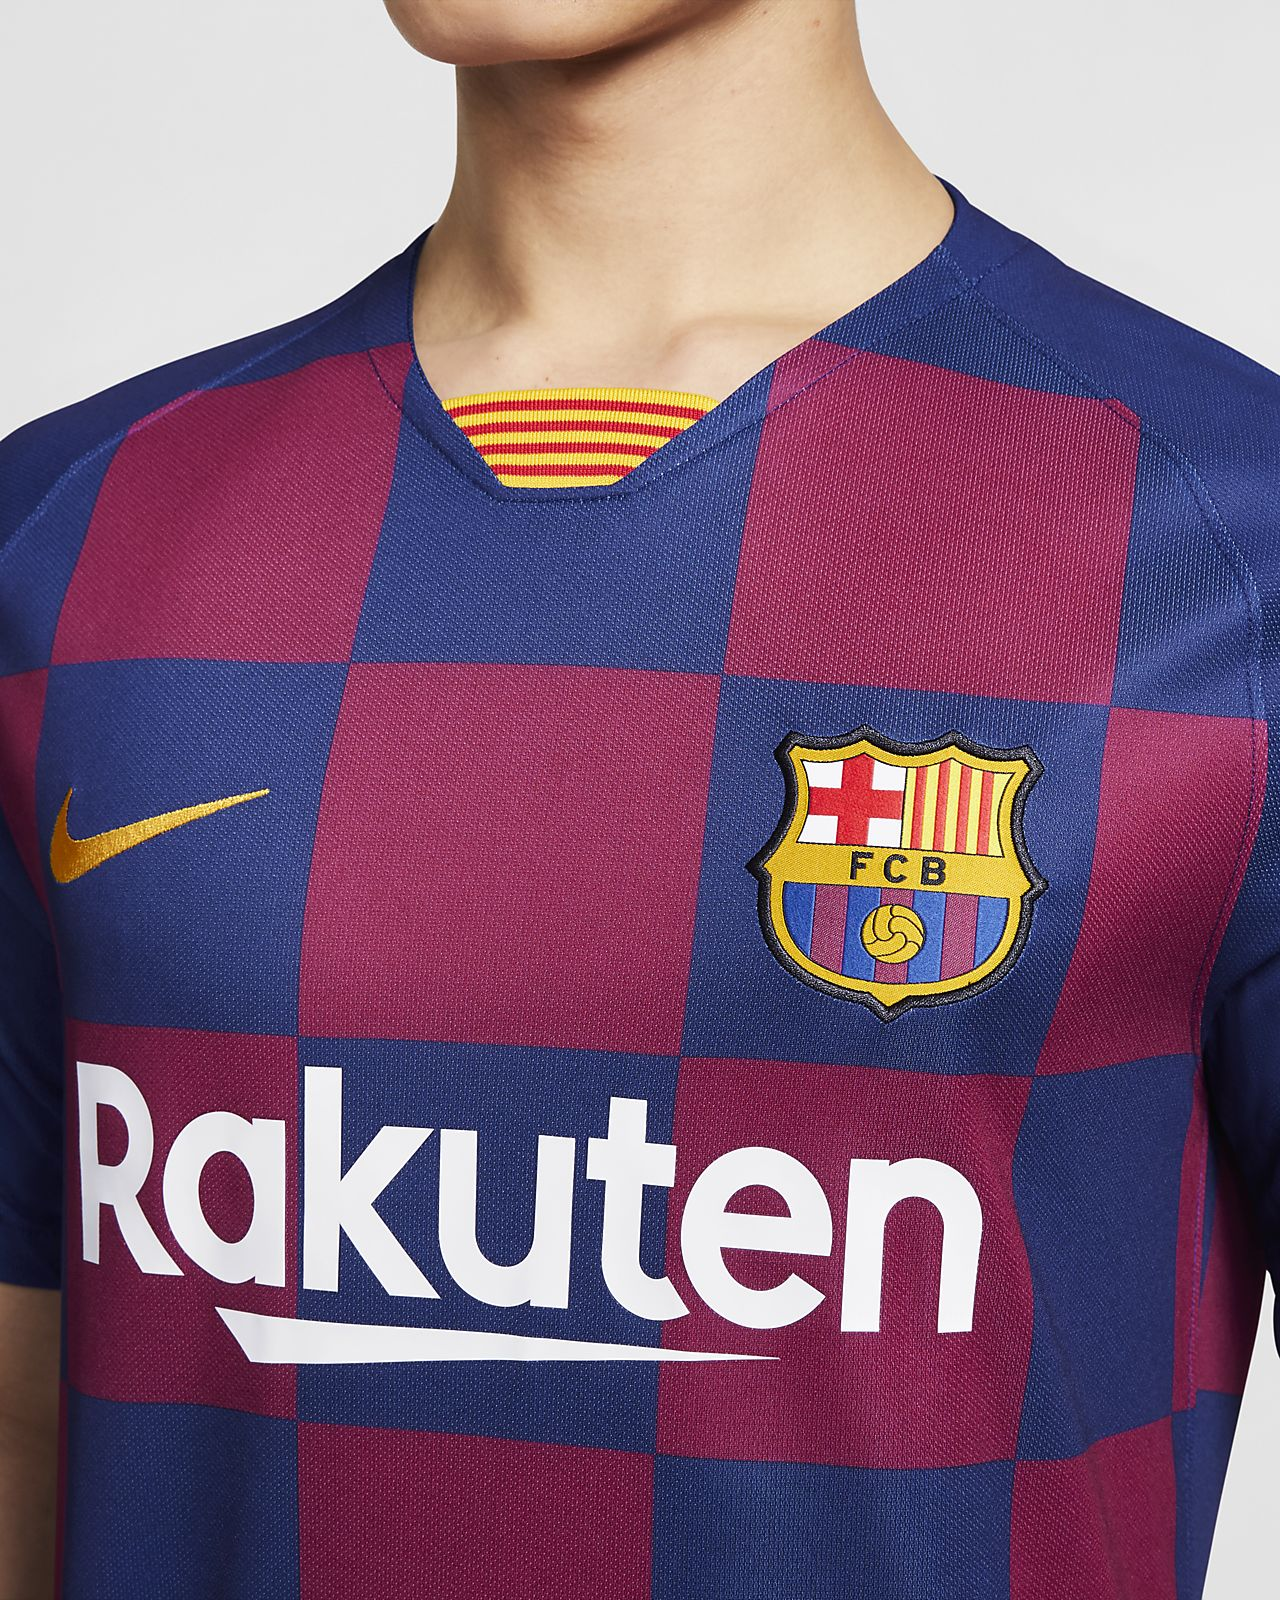 reputable site 832f3 a21d4 FC Barcelona 2019/20 Stadium Home Soccer Jersey